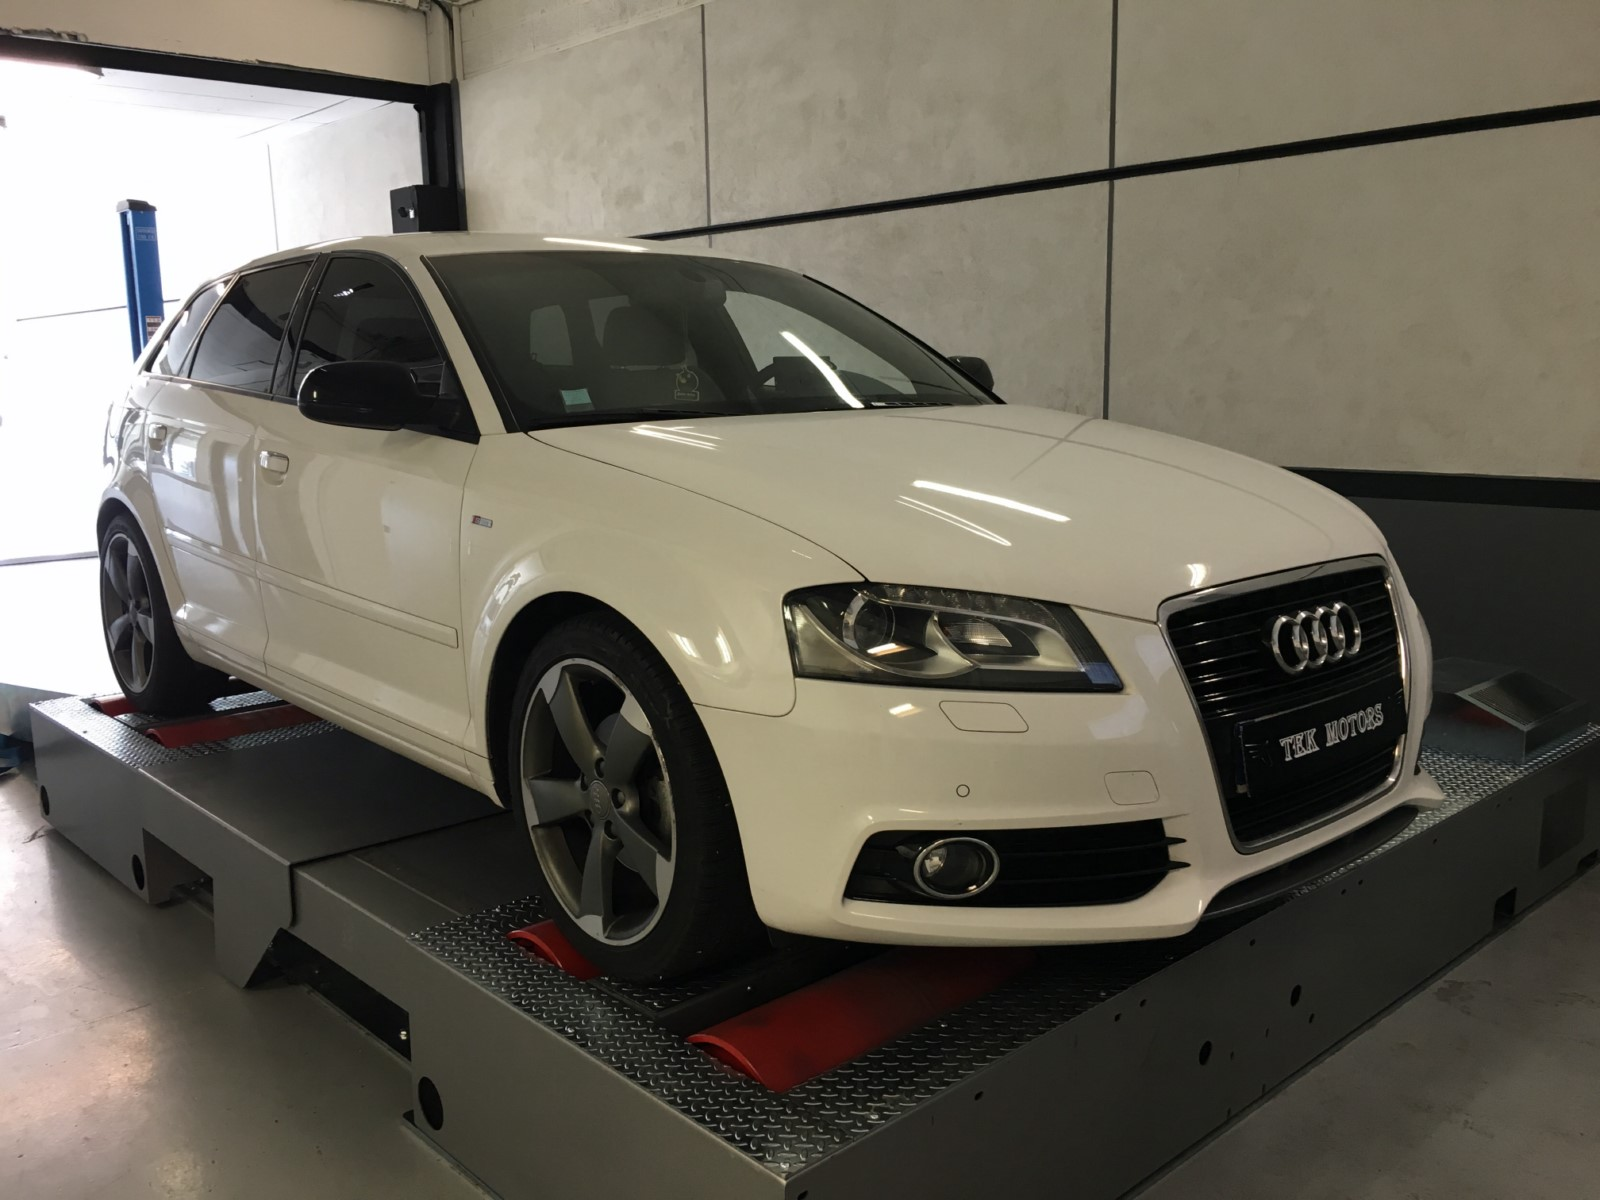 reprogrammation moteur audi a3 2 0 tdi 140 cv by tek motors i draveil tek motors. Black Bedroom Furniture Sets. Home Design Ideas